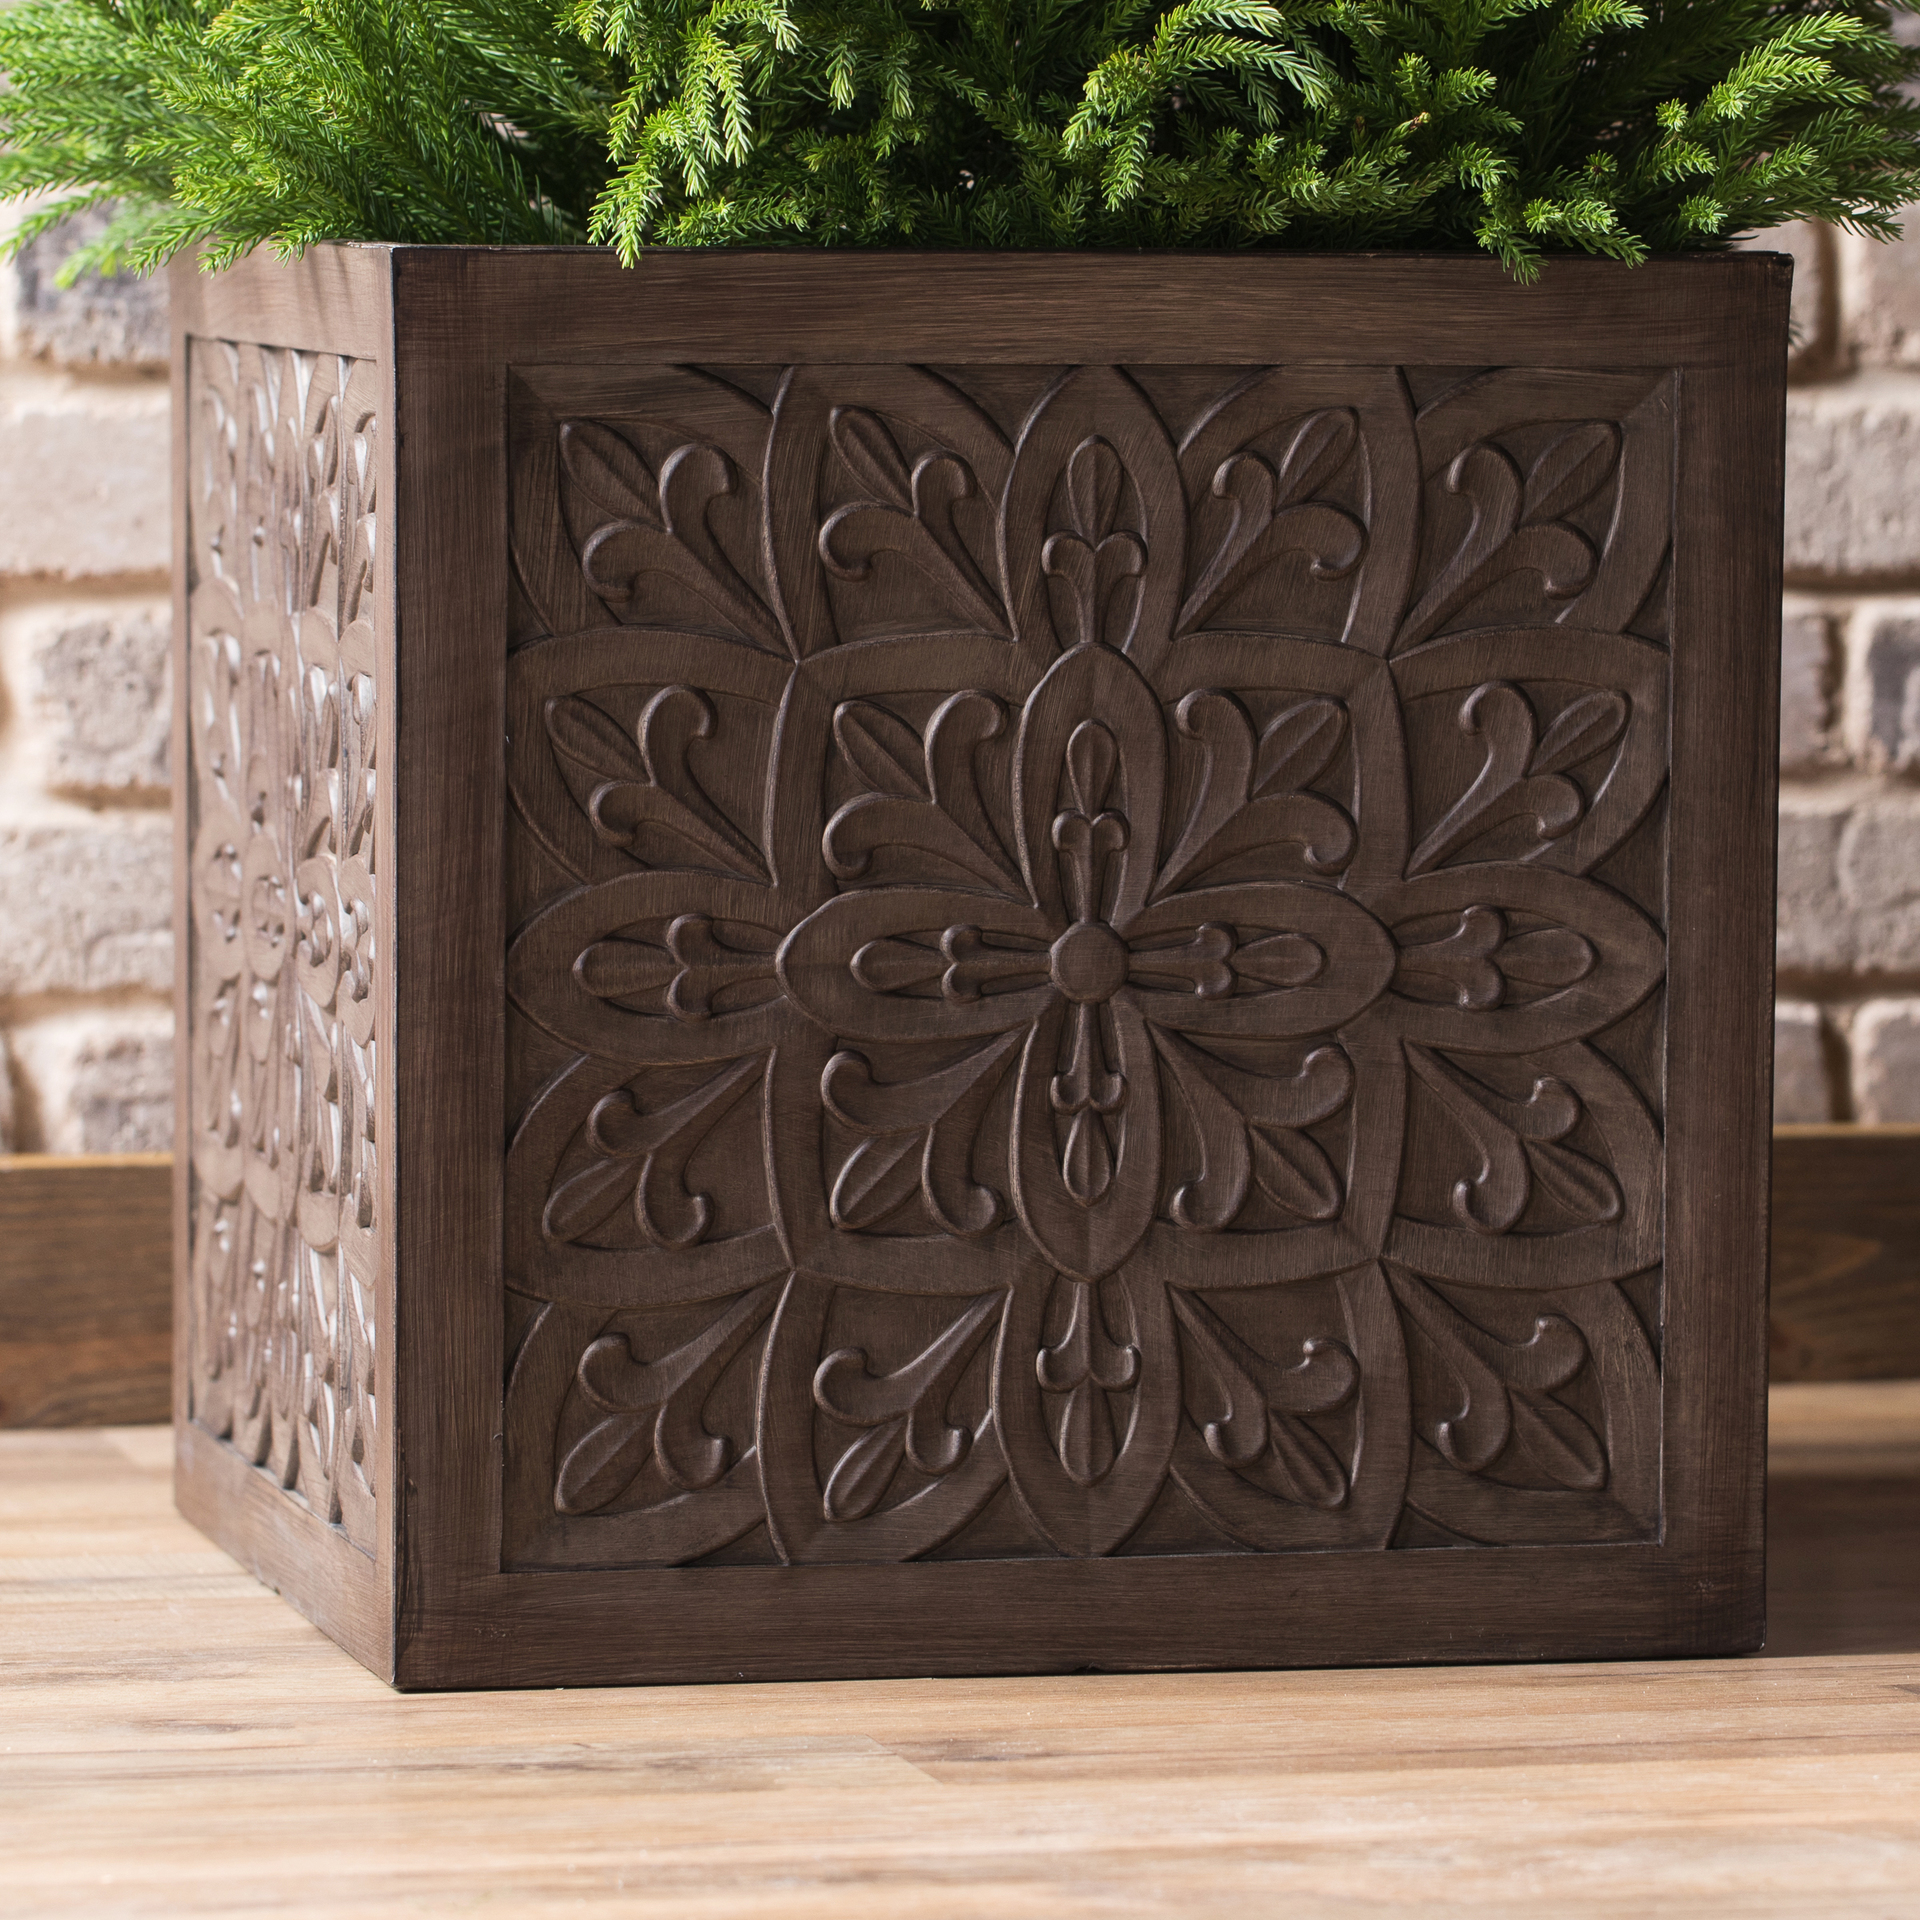 roth 13.95-in W X 14.93-in H Brown Resin Planter allen